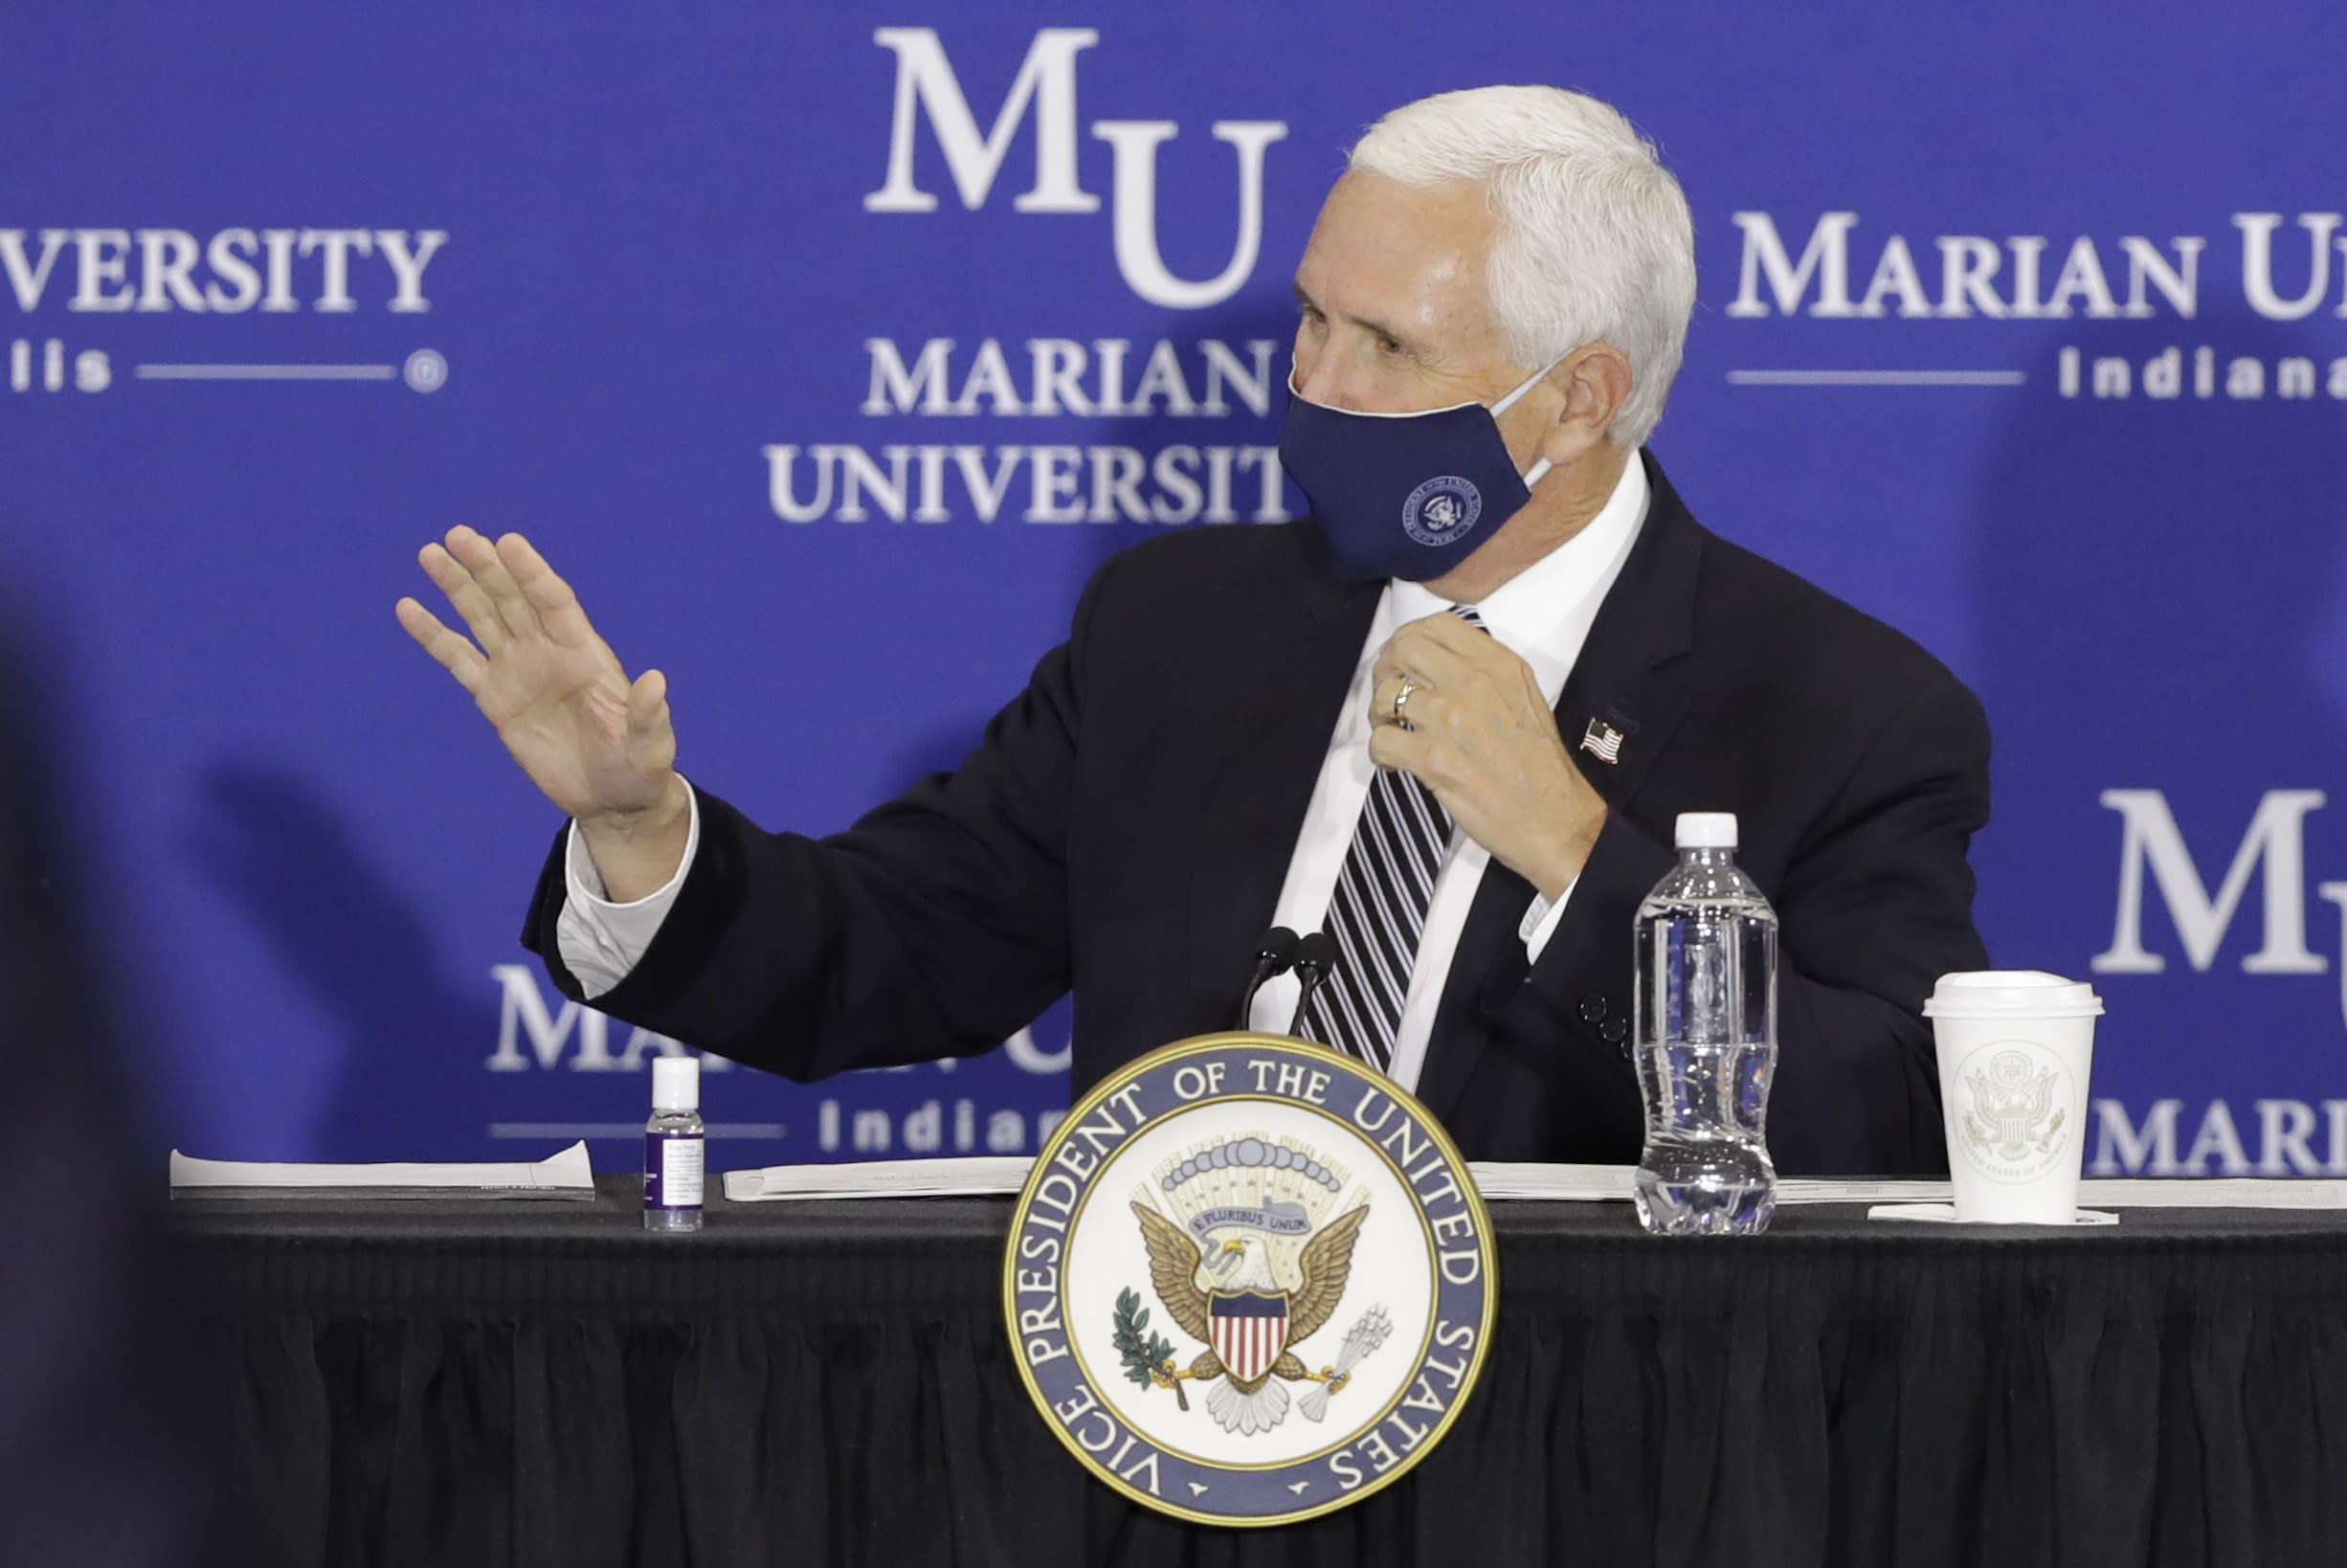 Vice President Mike Pence waves before speaking during a meeting with higher education leaders on safely reopening schools, Friday, July 24, 2020, in Indianapolis. (AP Photo/Darron Cummings)